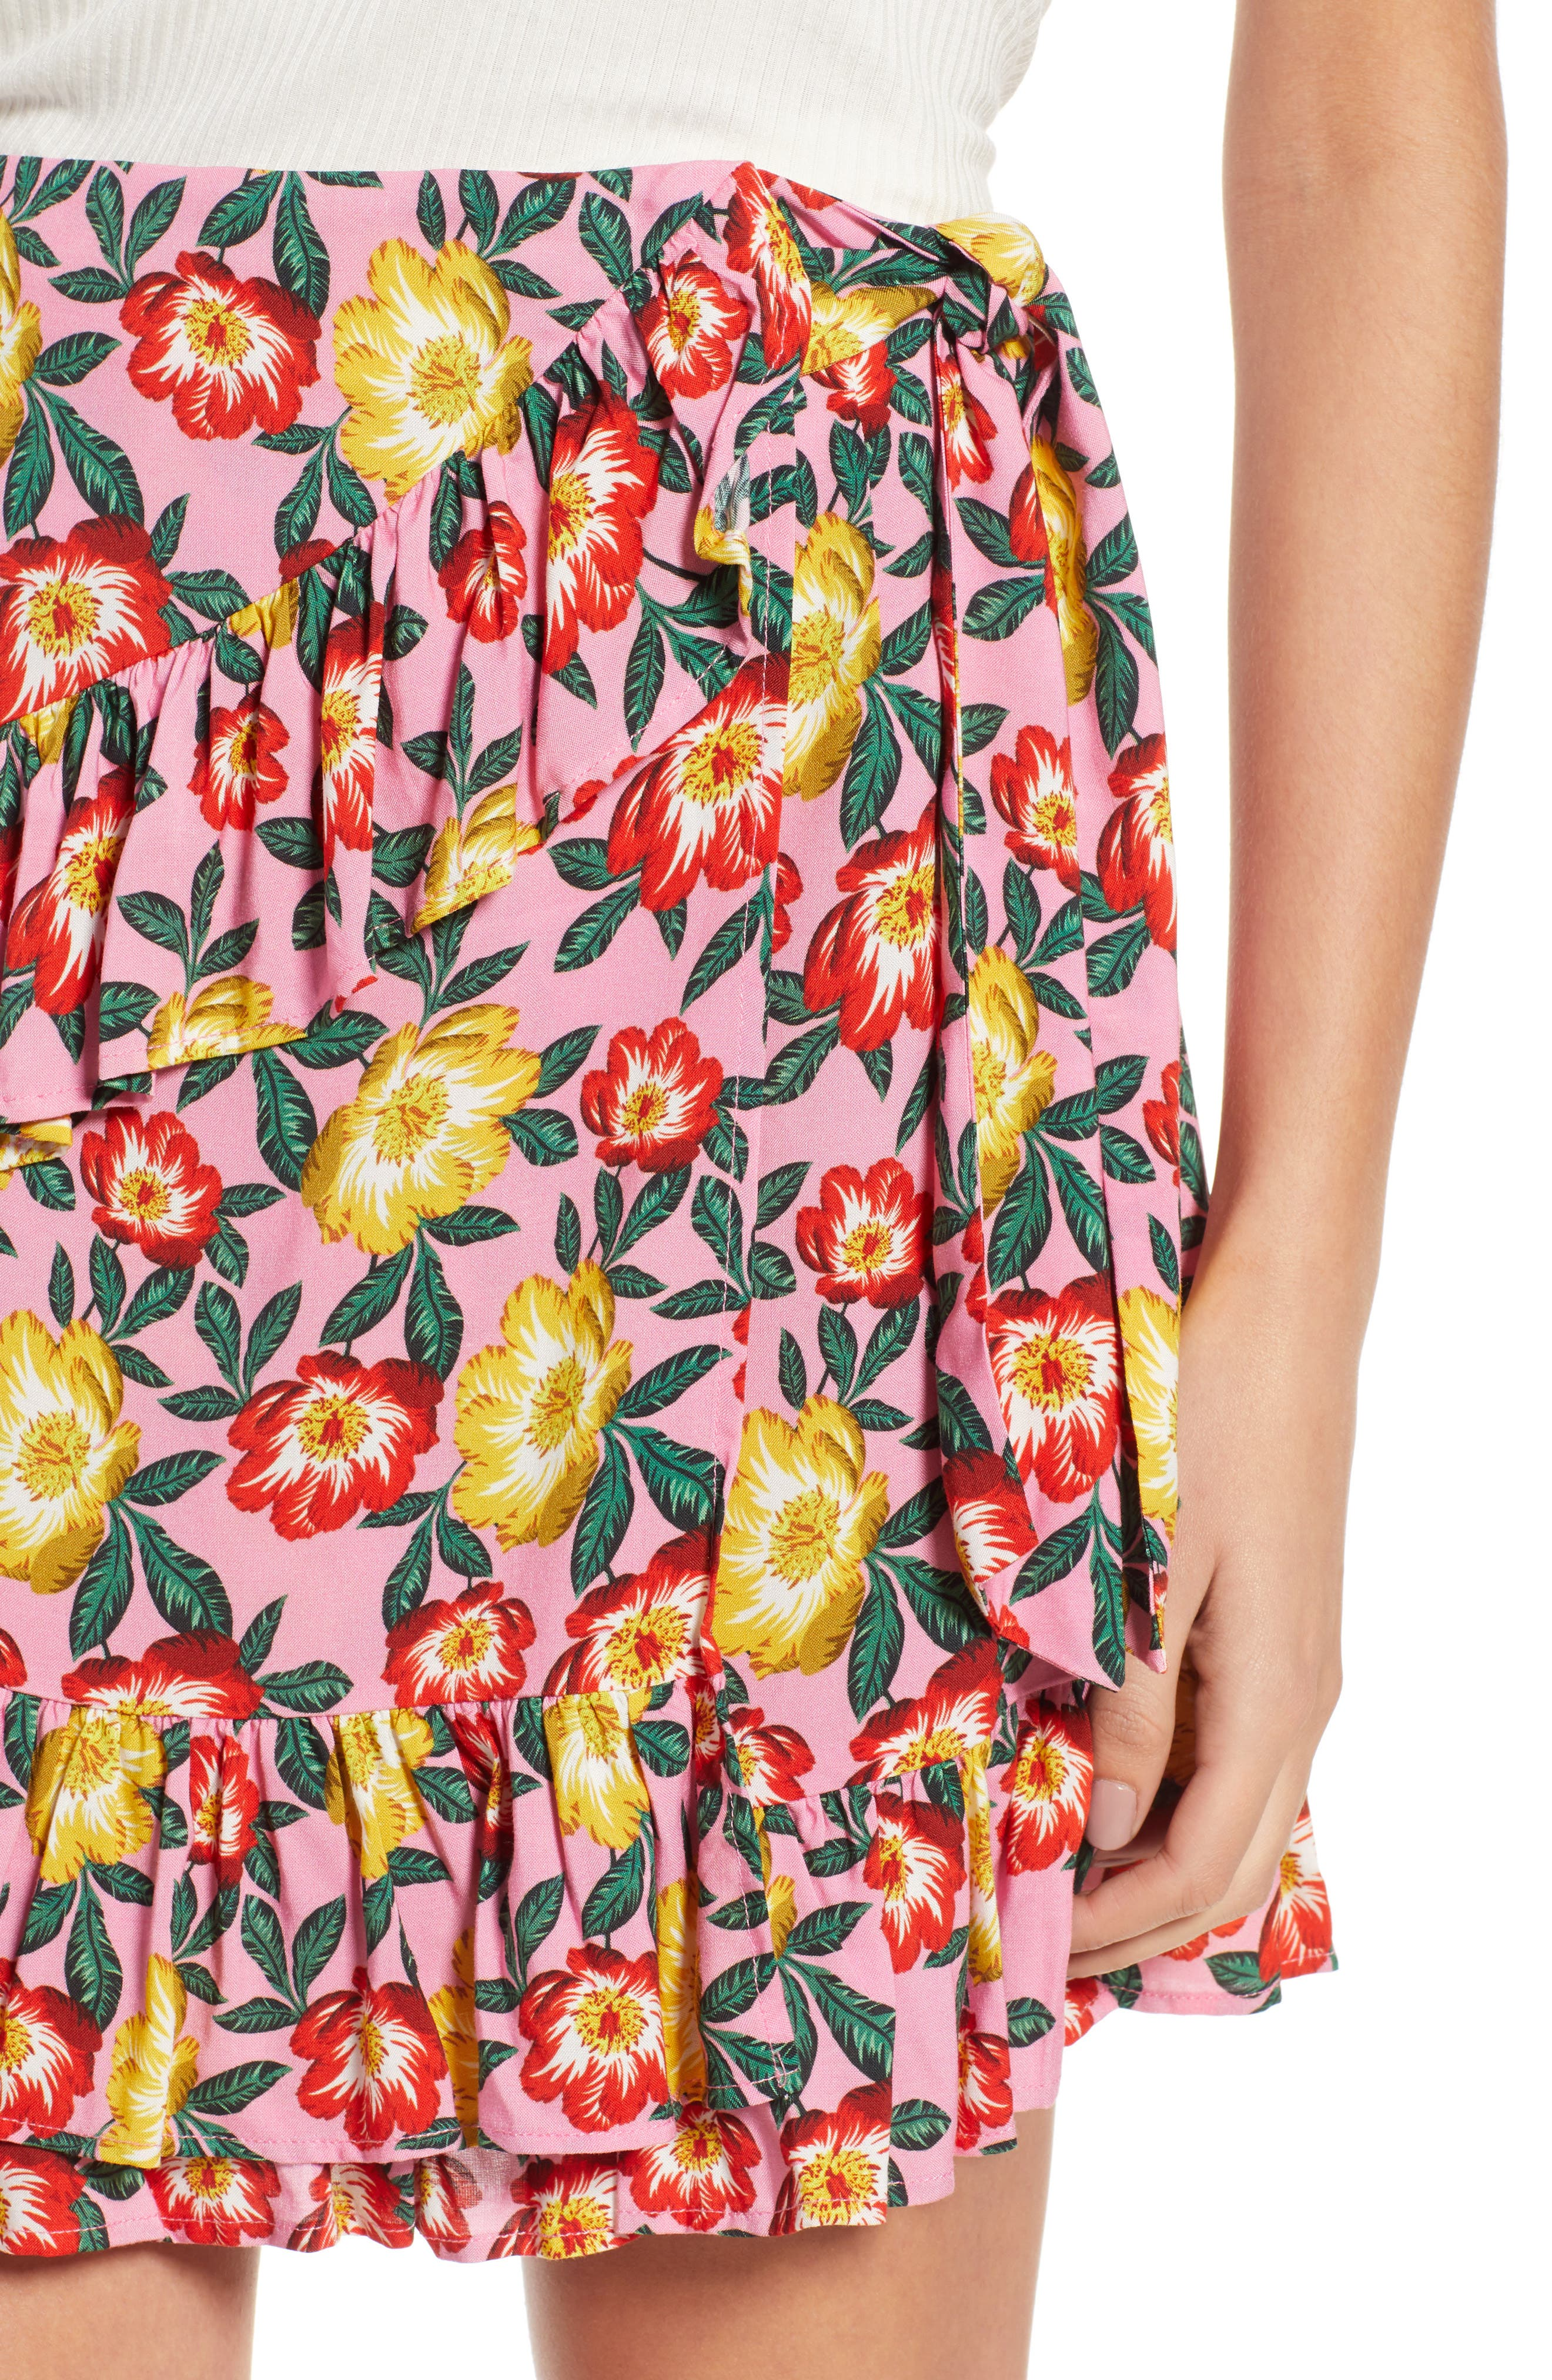 Reunion Floral Print Wrap Skirt,                             Alternate thumbnail 5, color,                             Small Blossom Roselle